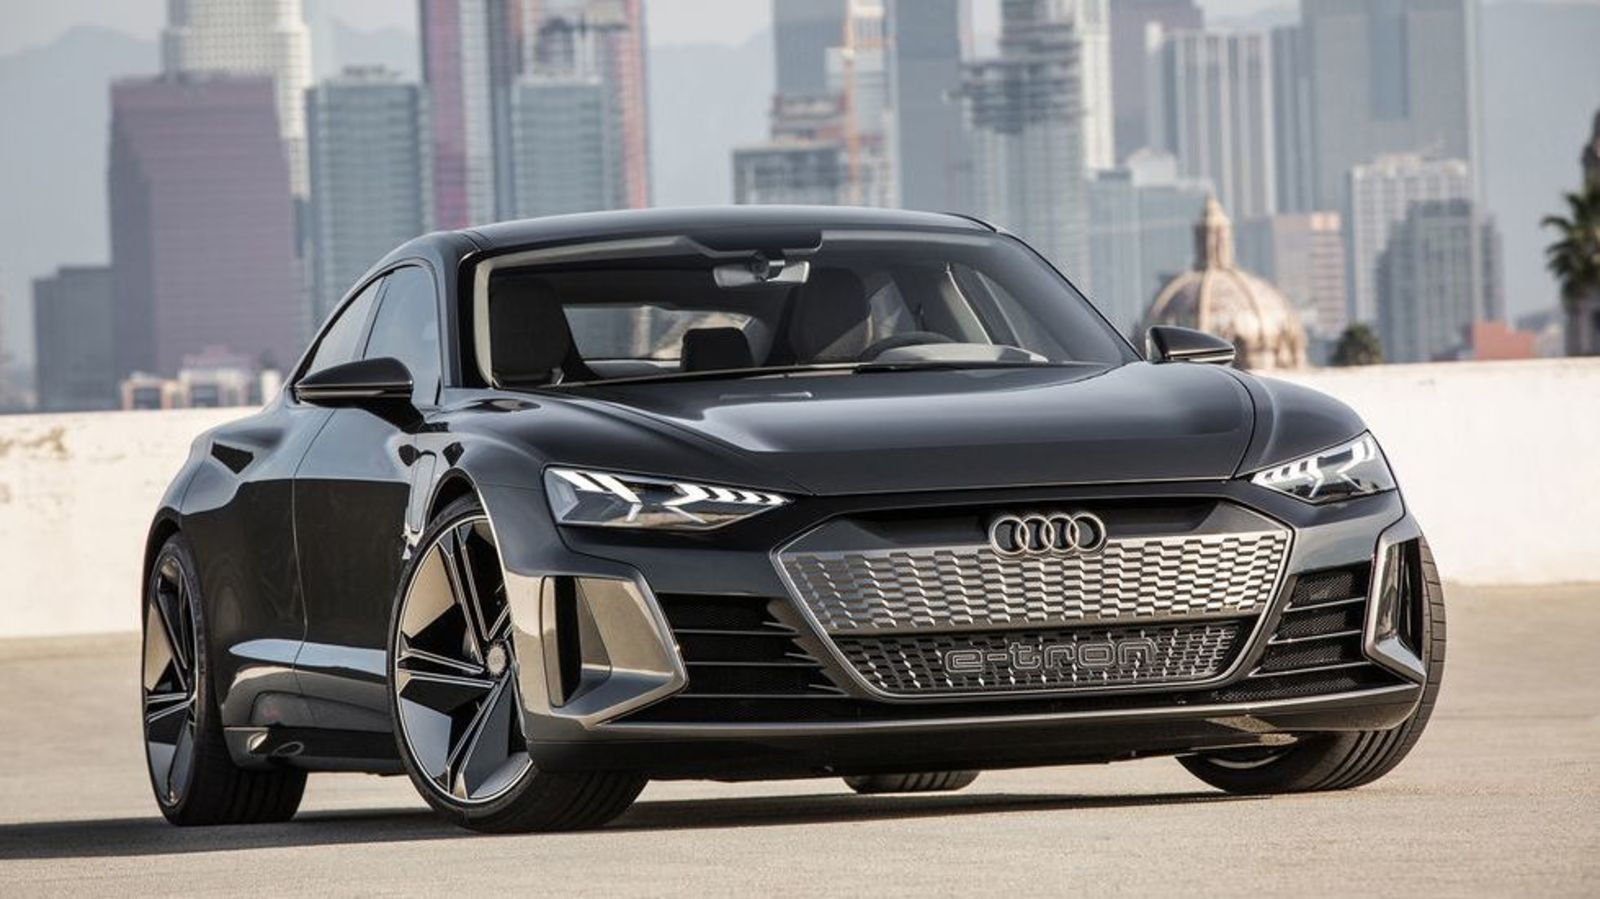 The 2020 Audi E Tron Gt Concept Is An Incredibly Handsome 590 Hp Electric Audi Sports Car Audi E Tron Sports Car Price